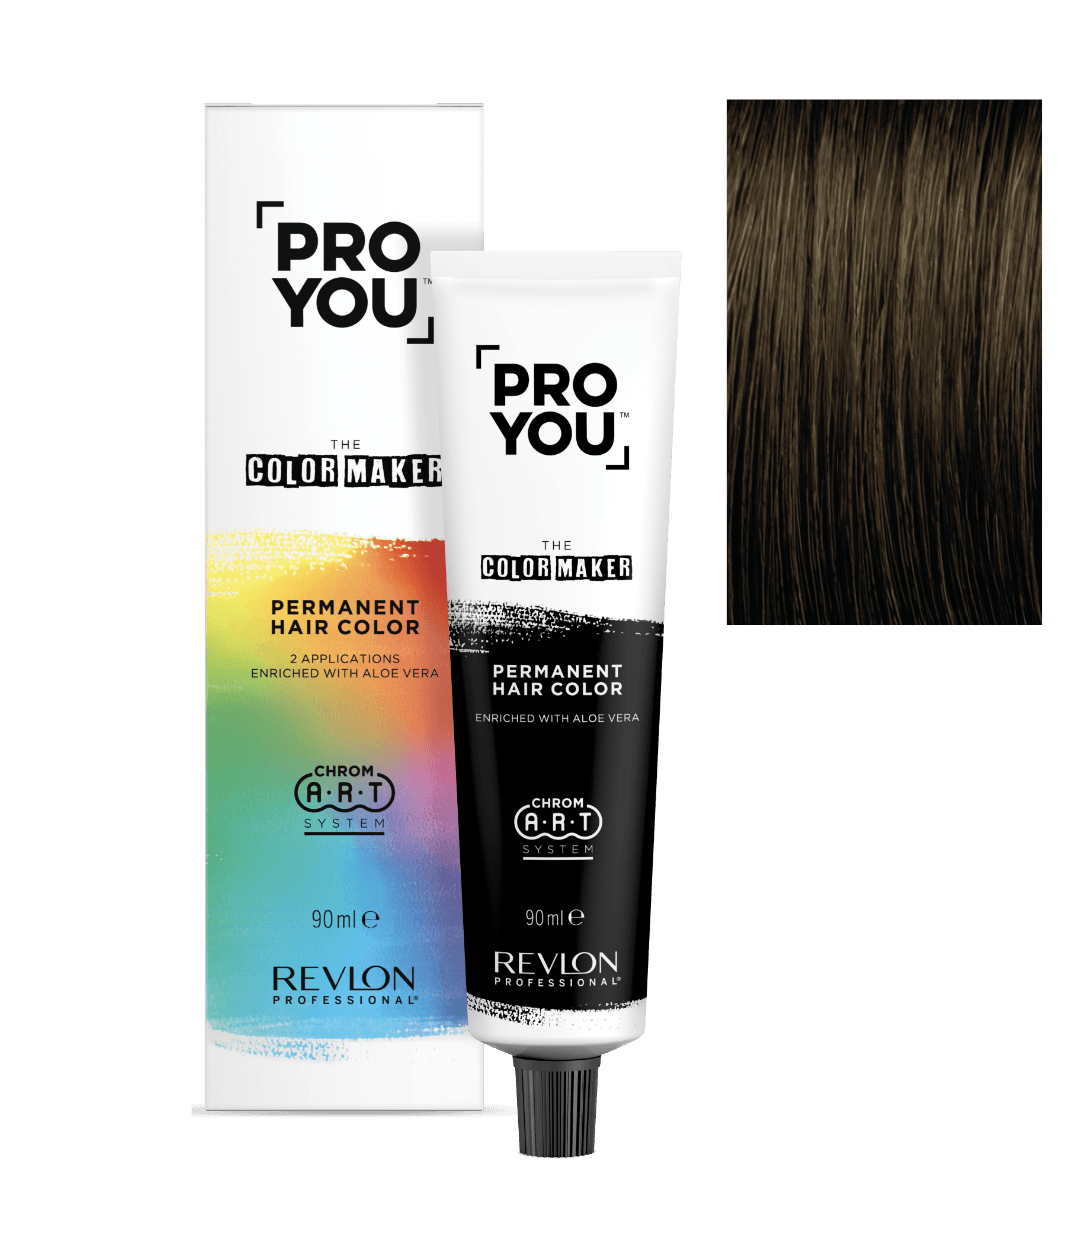 revlon professional ProYou Color Maker 6.0 | Duo Cosmetics